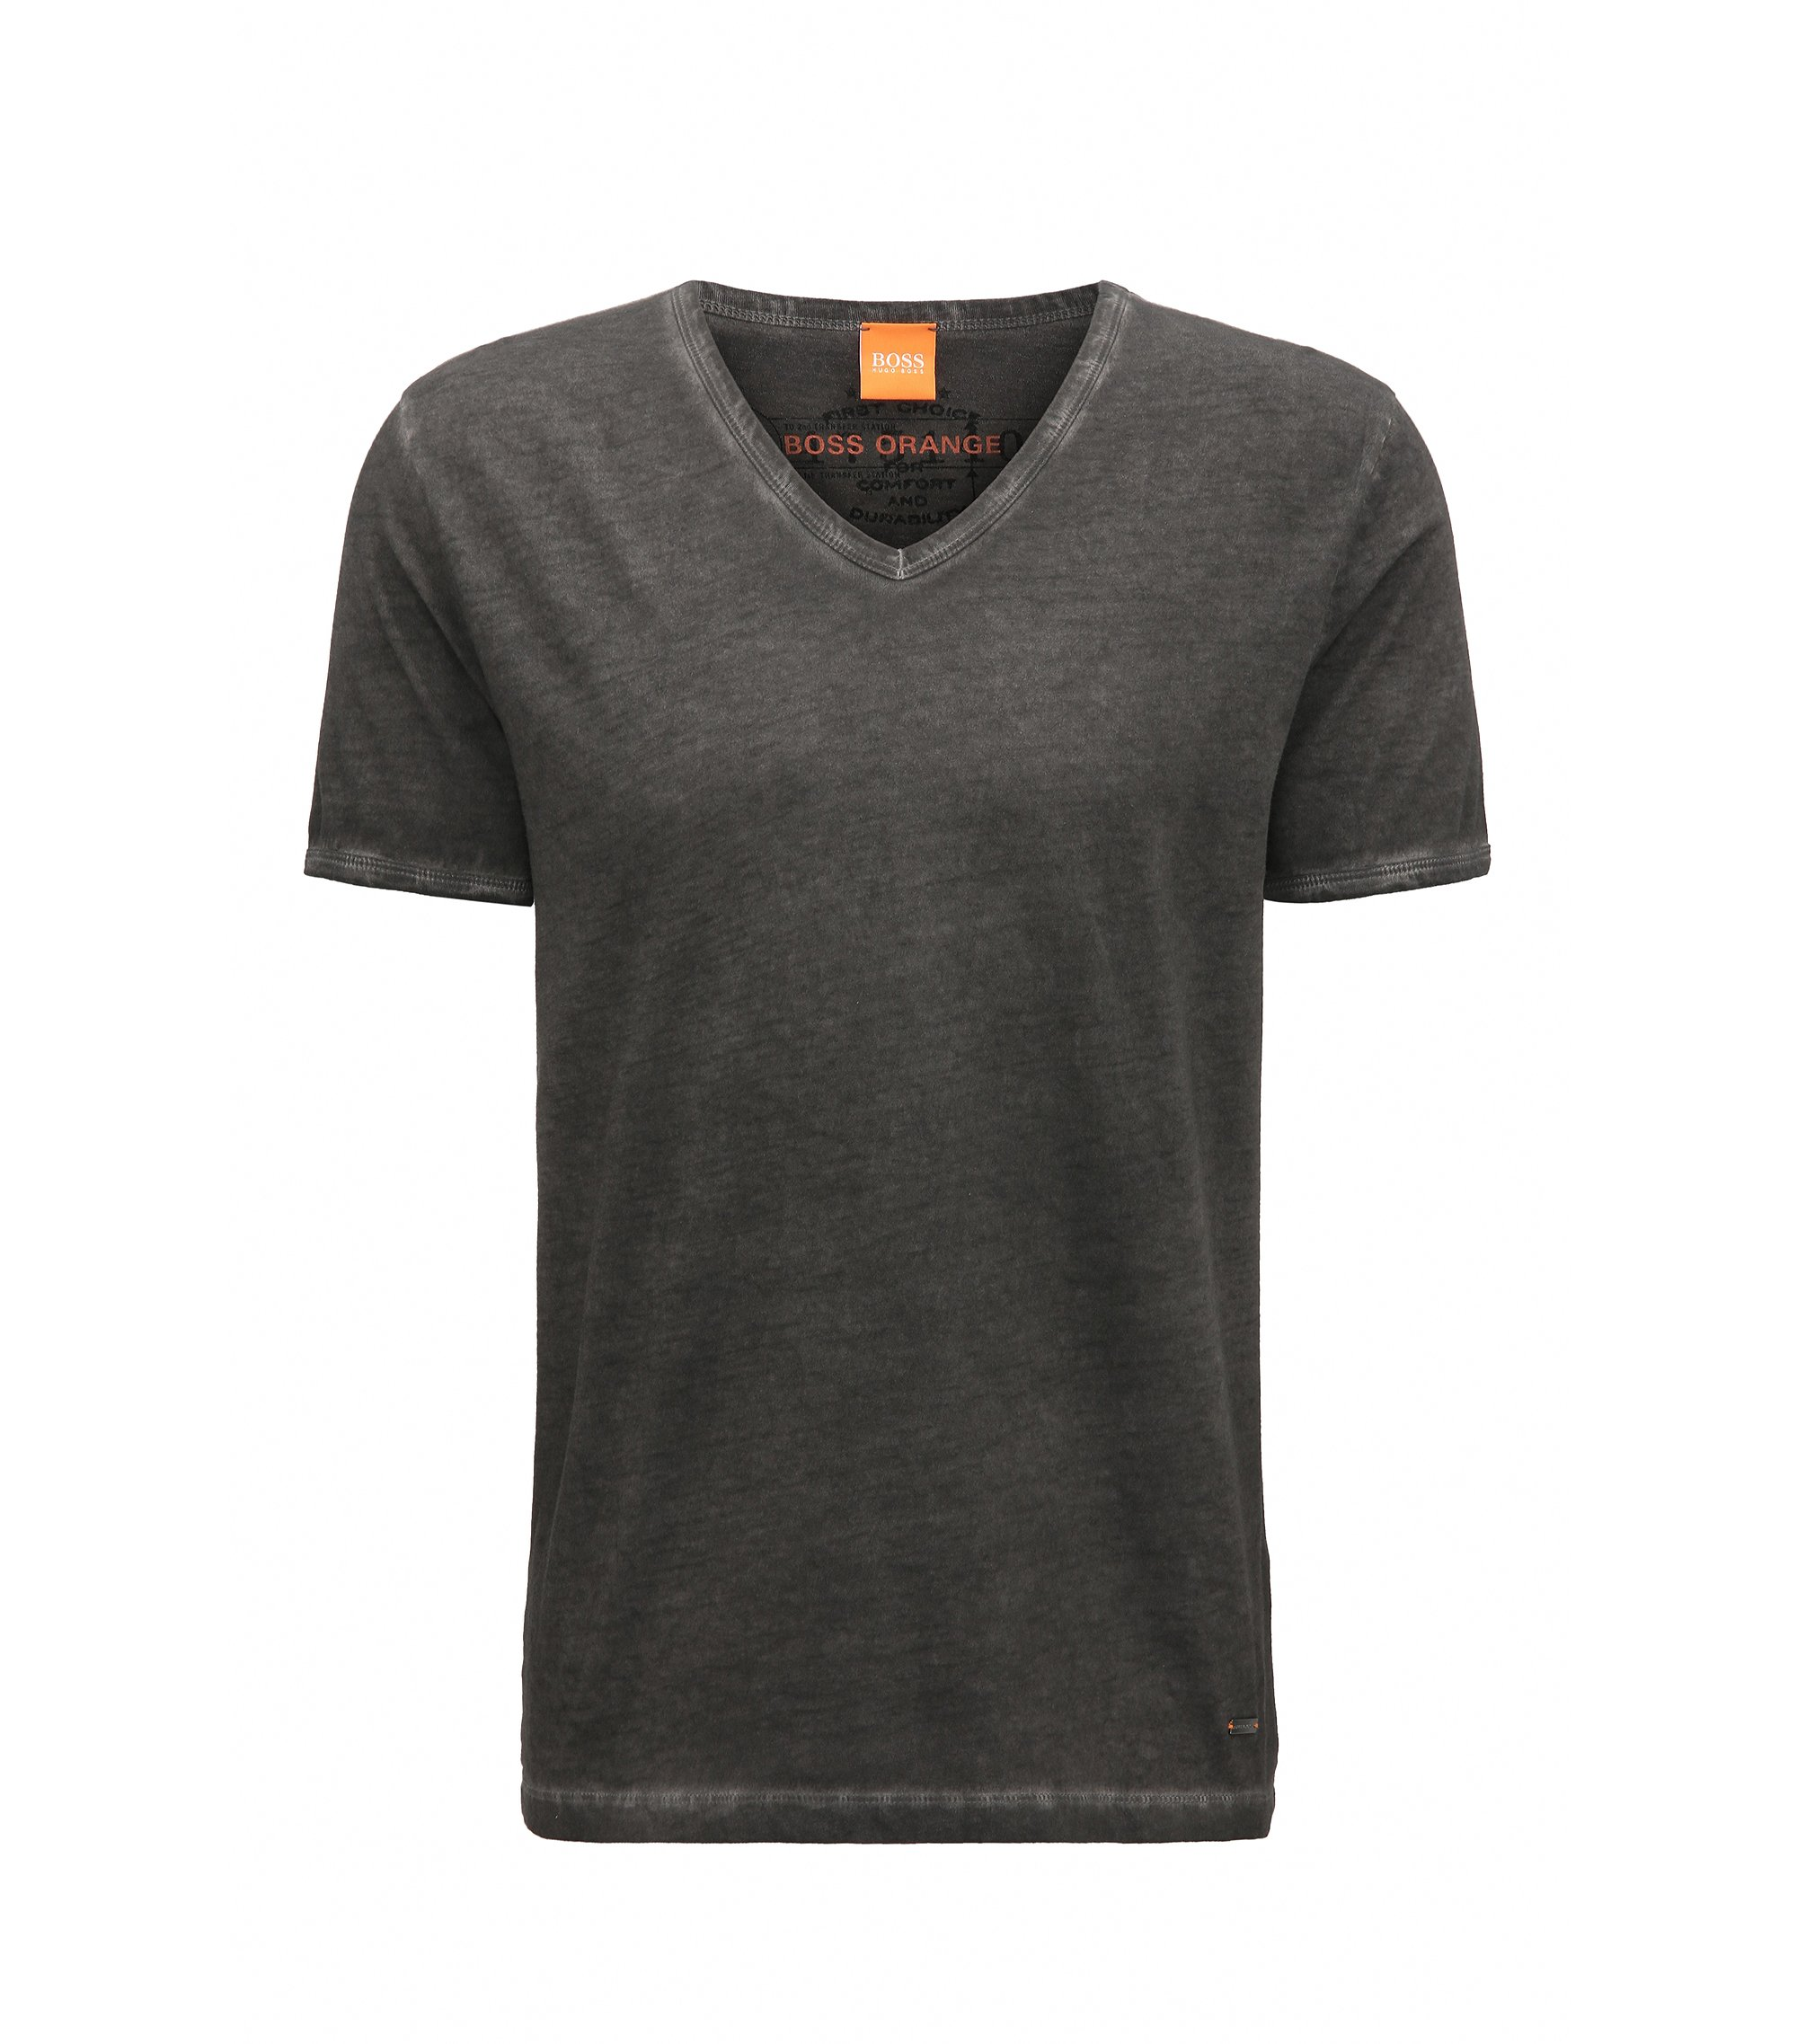 T-shirt Regular Fit en coton garment dyed, Noir